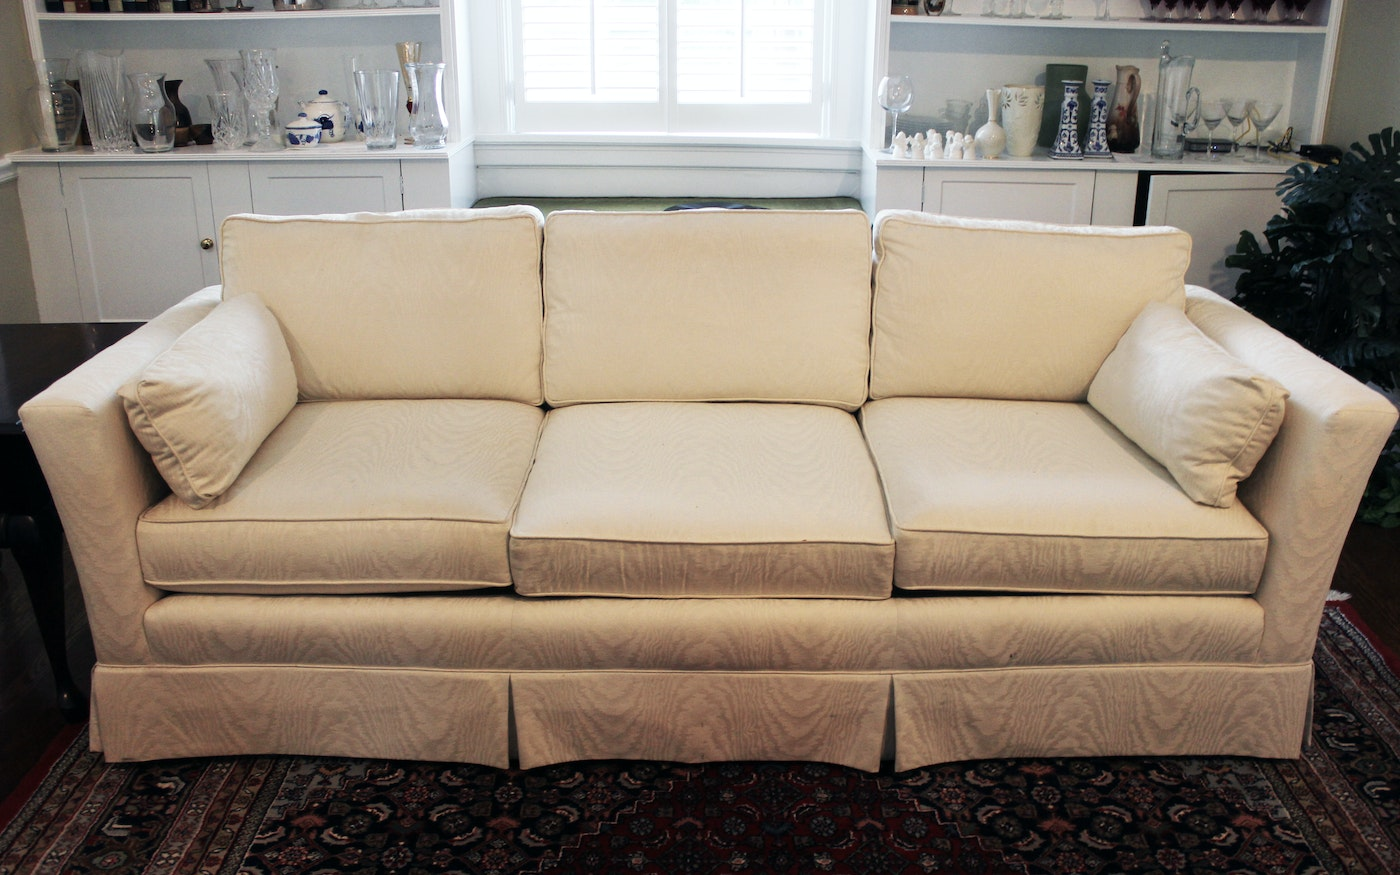 Designer Upholstered Sofa By Lt Designs Ebth